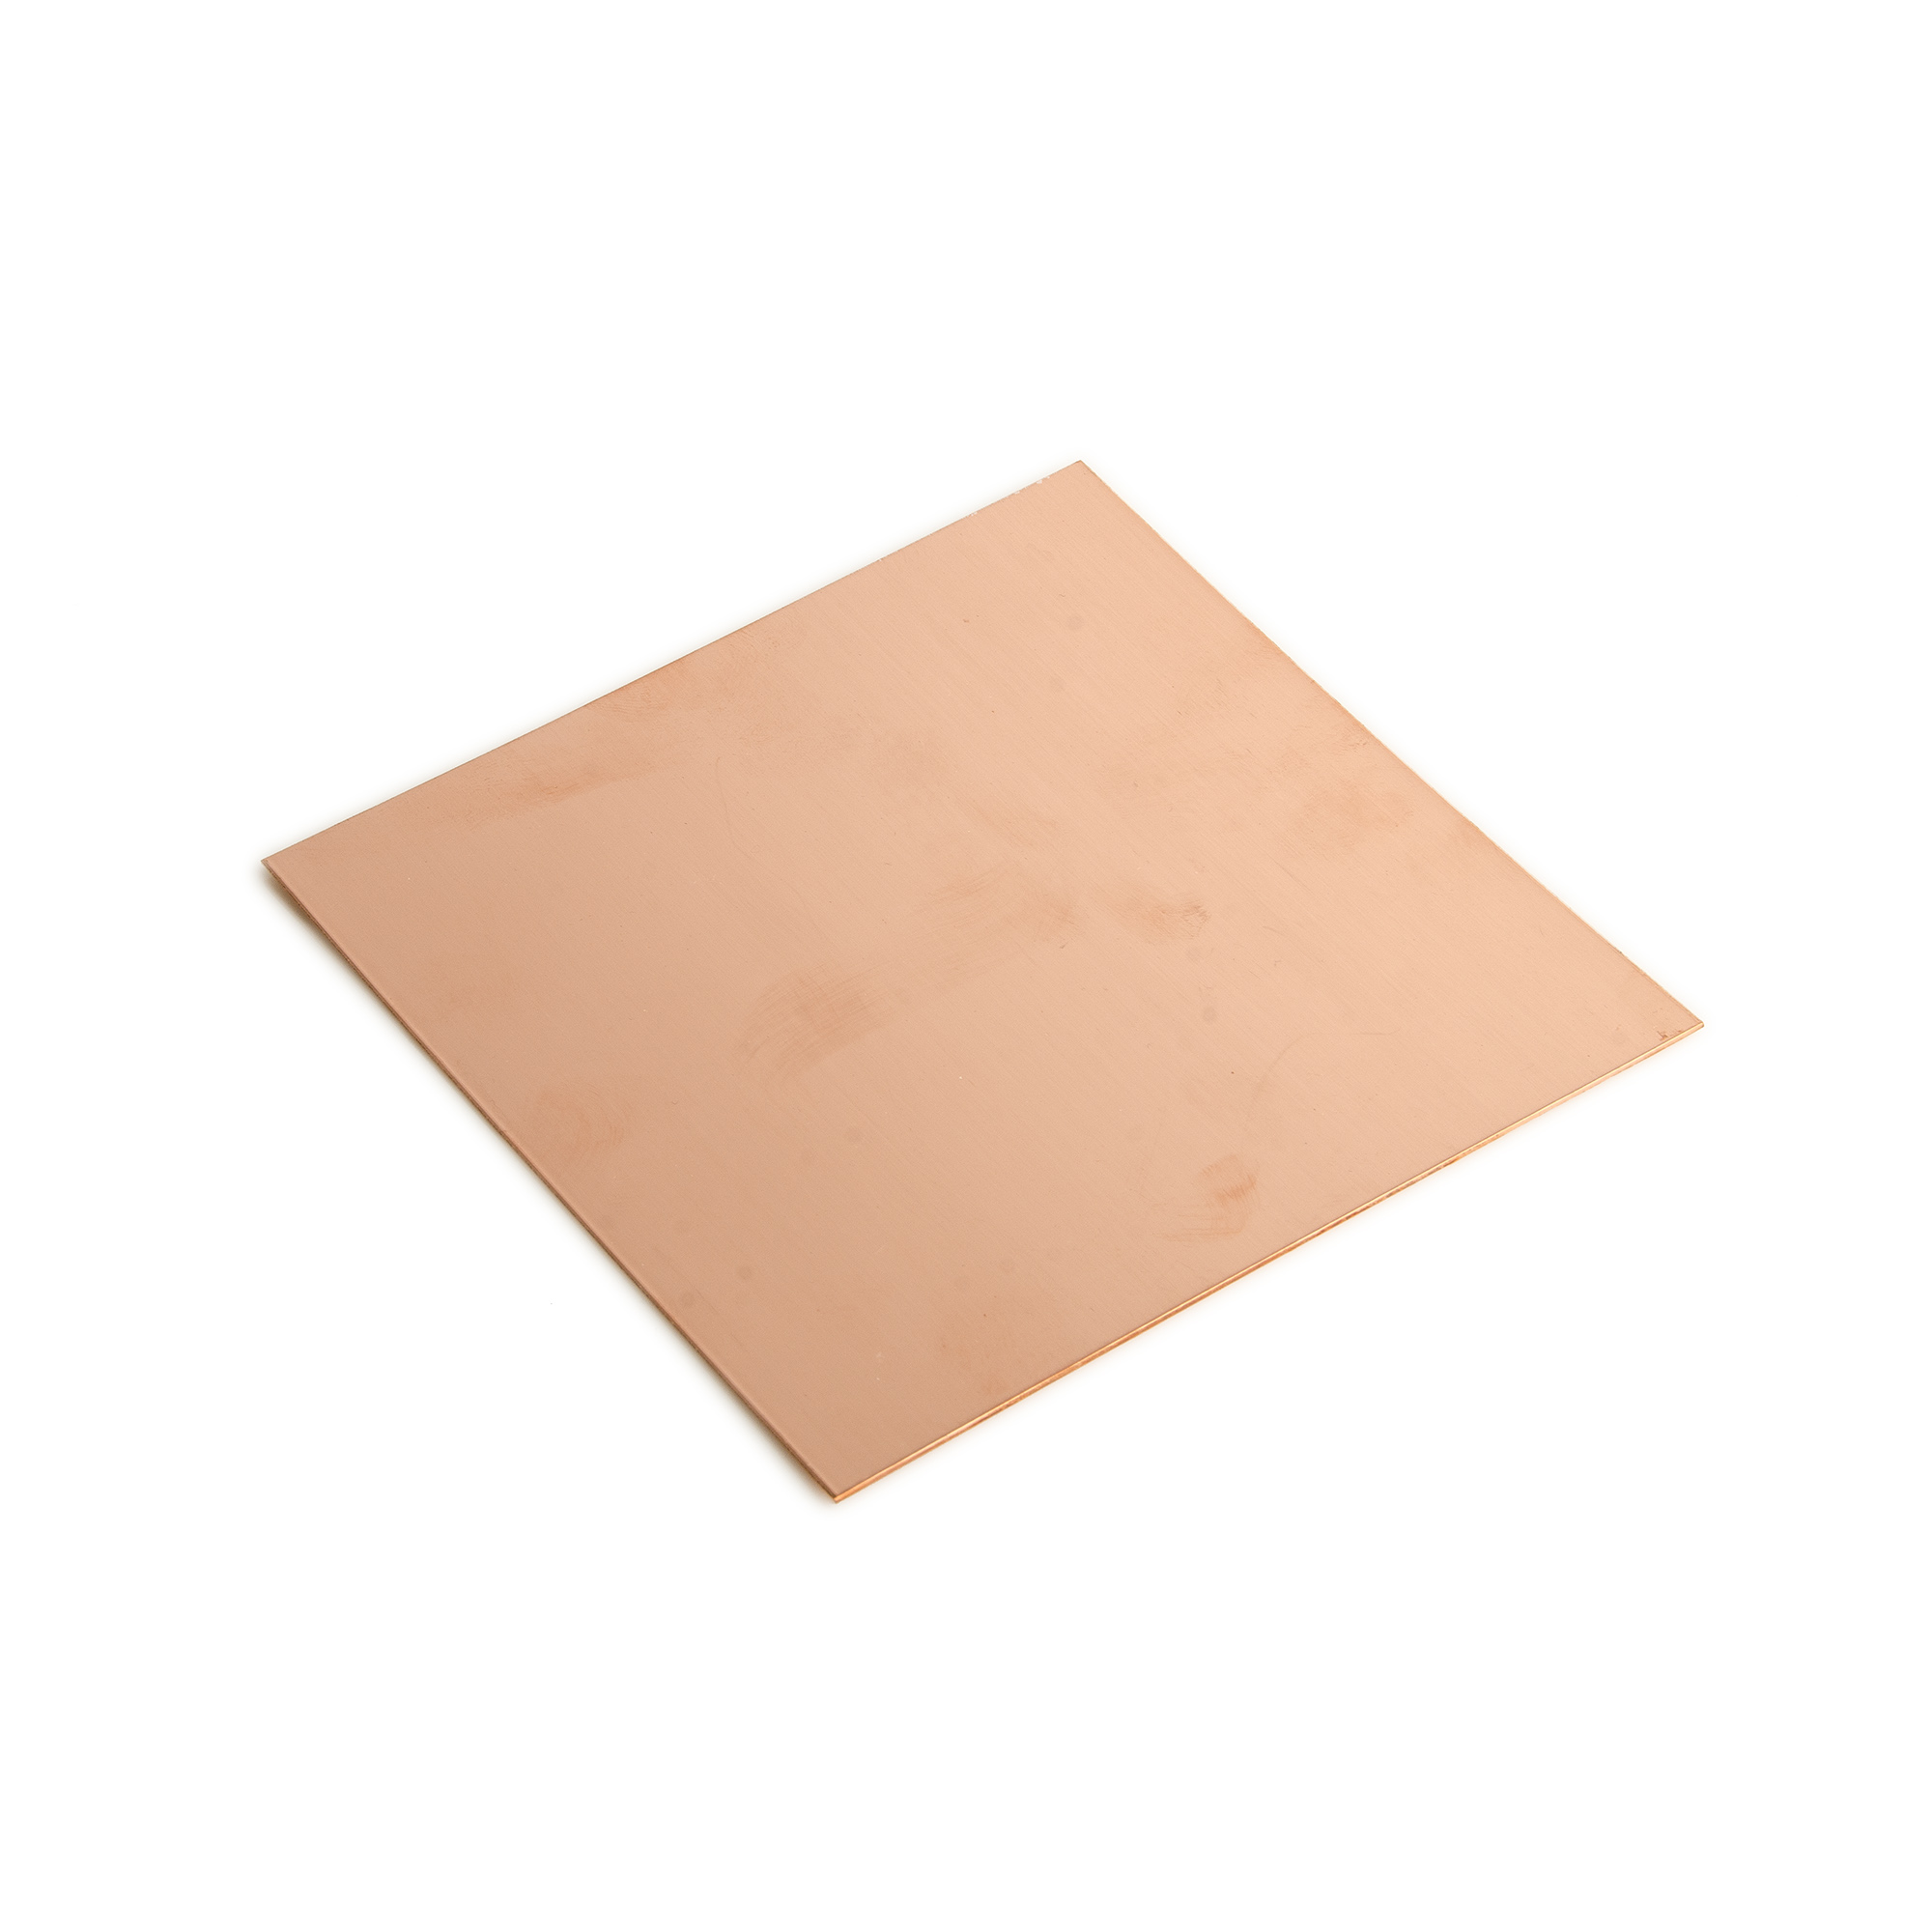 18 Gauge 0.040 Dead Soft Copper Sheet Metal - 6x6 Inch